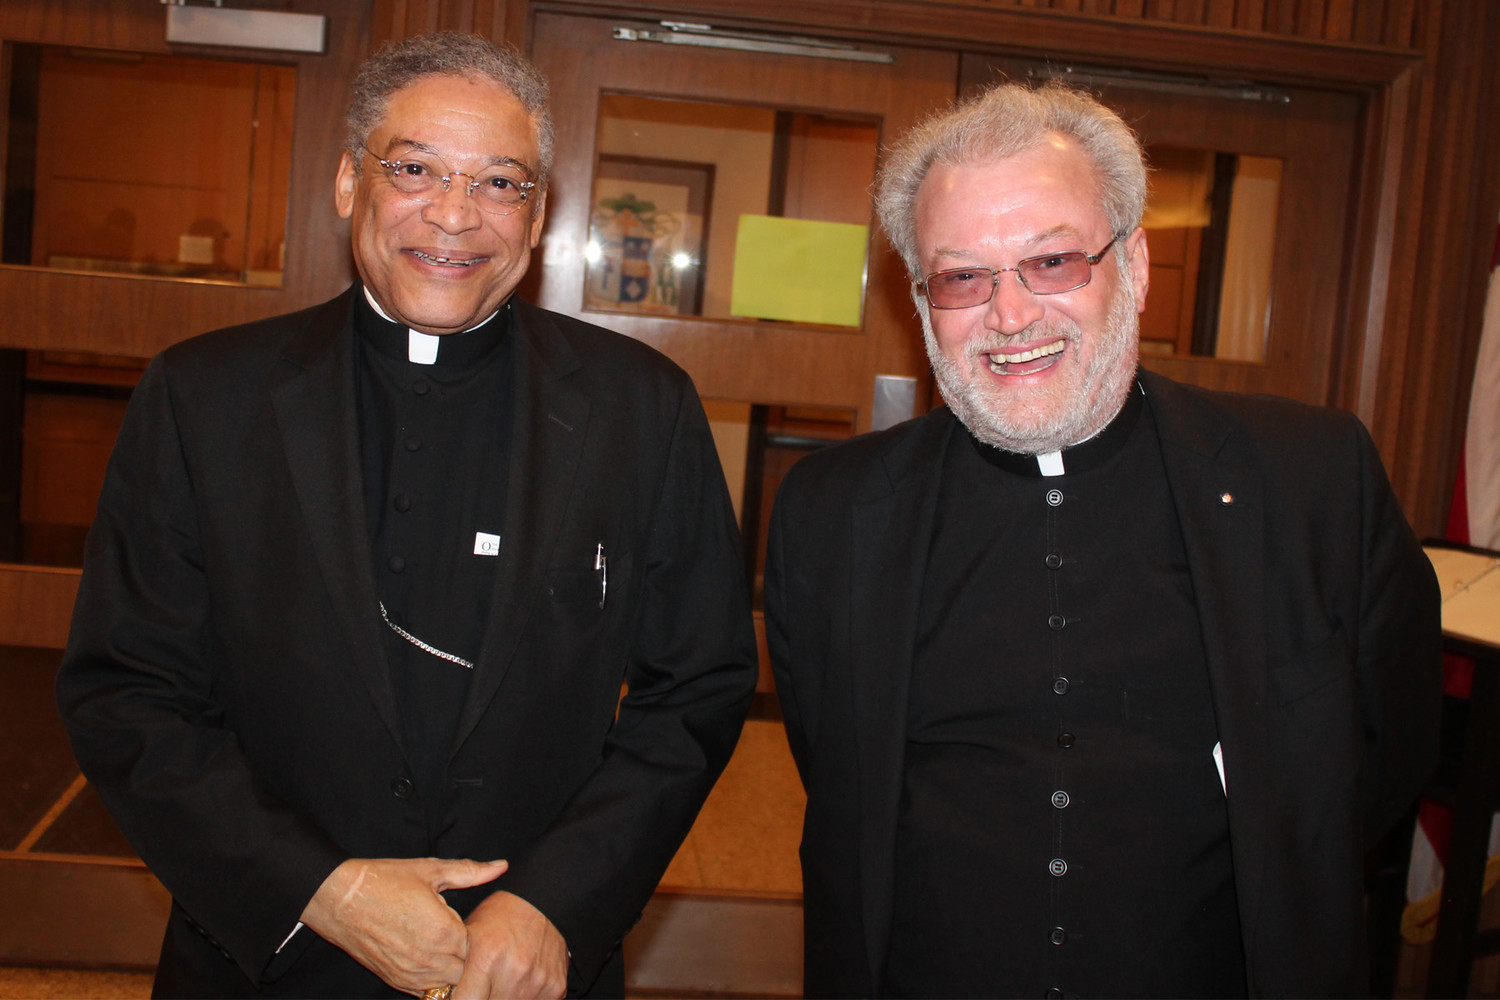 Bishop Joseph N. Perry, auxiliary bishop of Chicago and diocesan postulator for Servant of God Father Augustus Tolton's beatification cause, visits with Father Michael W. Penn, pastor of Holy Rosary parish in Monroe City and St. Stephen parish in Indian Creek, who is the Jefferson City diocese's representative to the Fr. Tolton Guild.